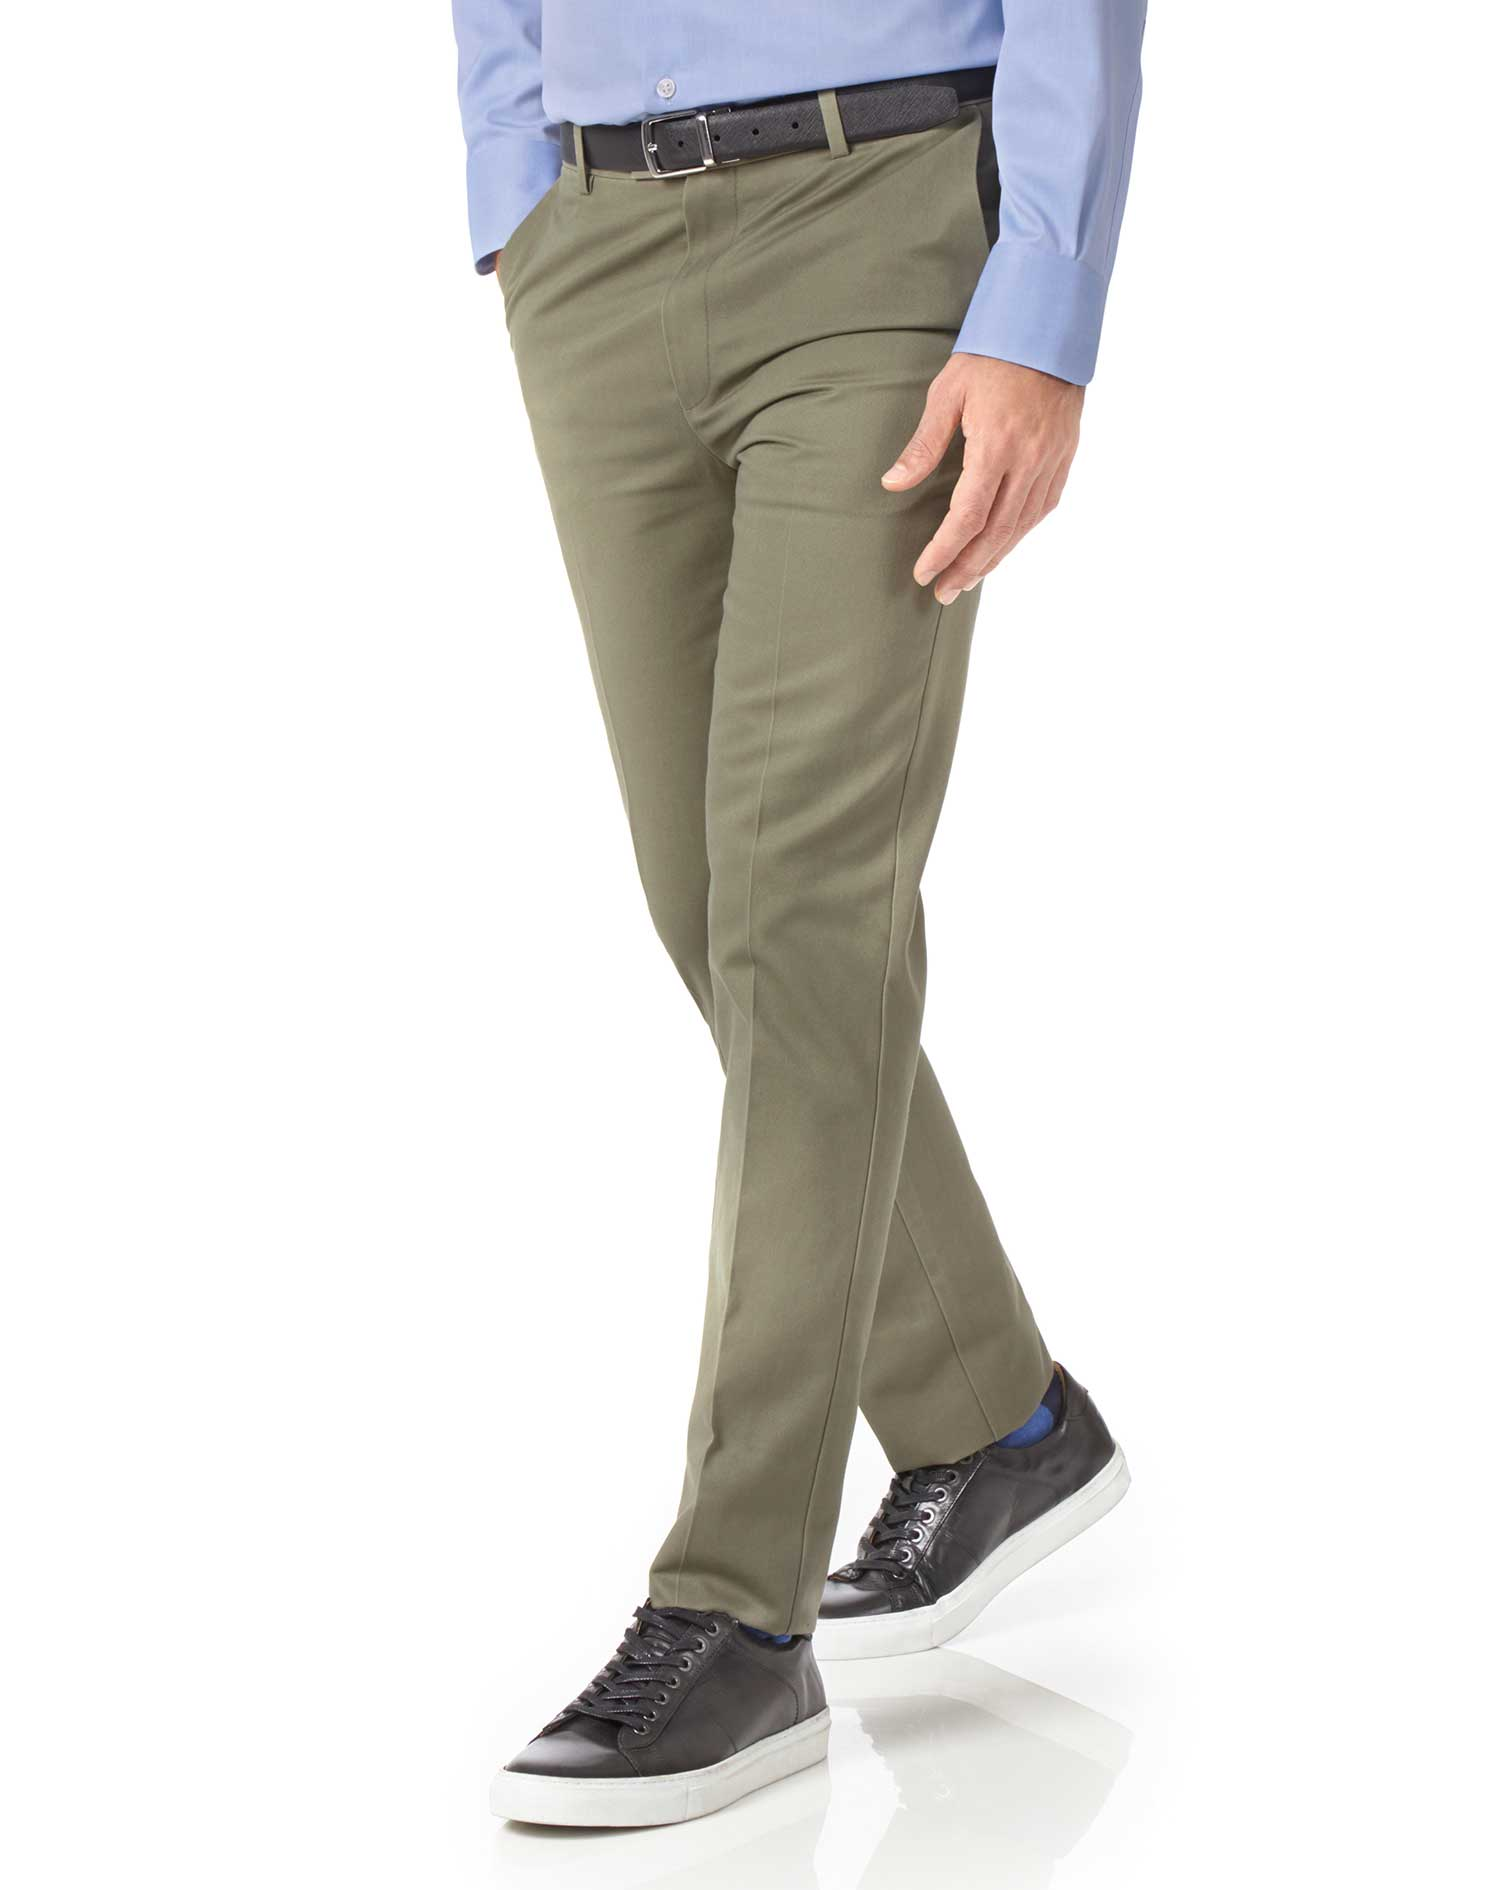 Olive Extra Slim Fit Flat Front Non-Iron Cotton Chino Trousers Size W34 L34 by Charles Tyrwhitt